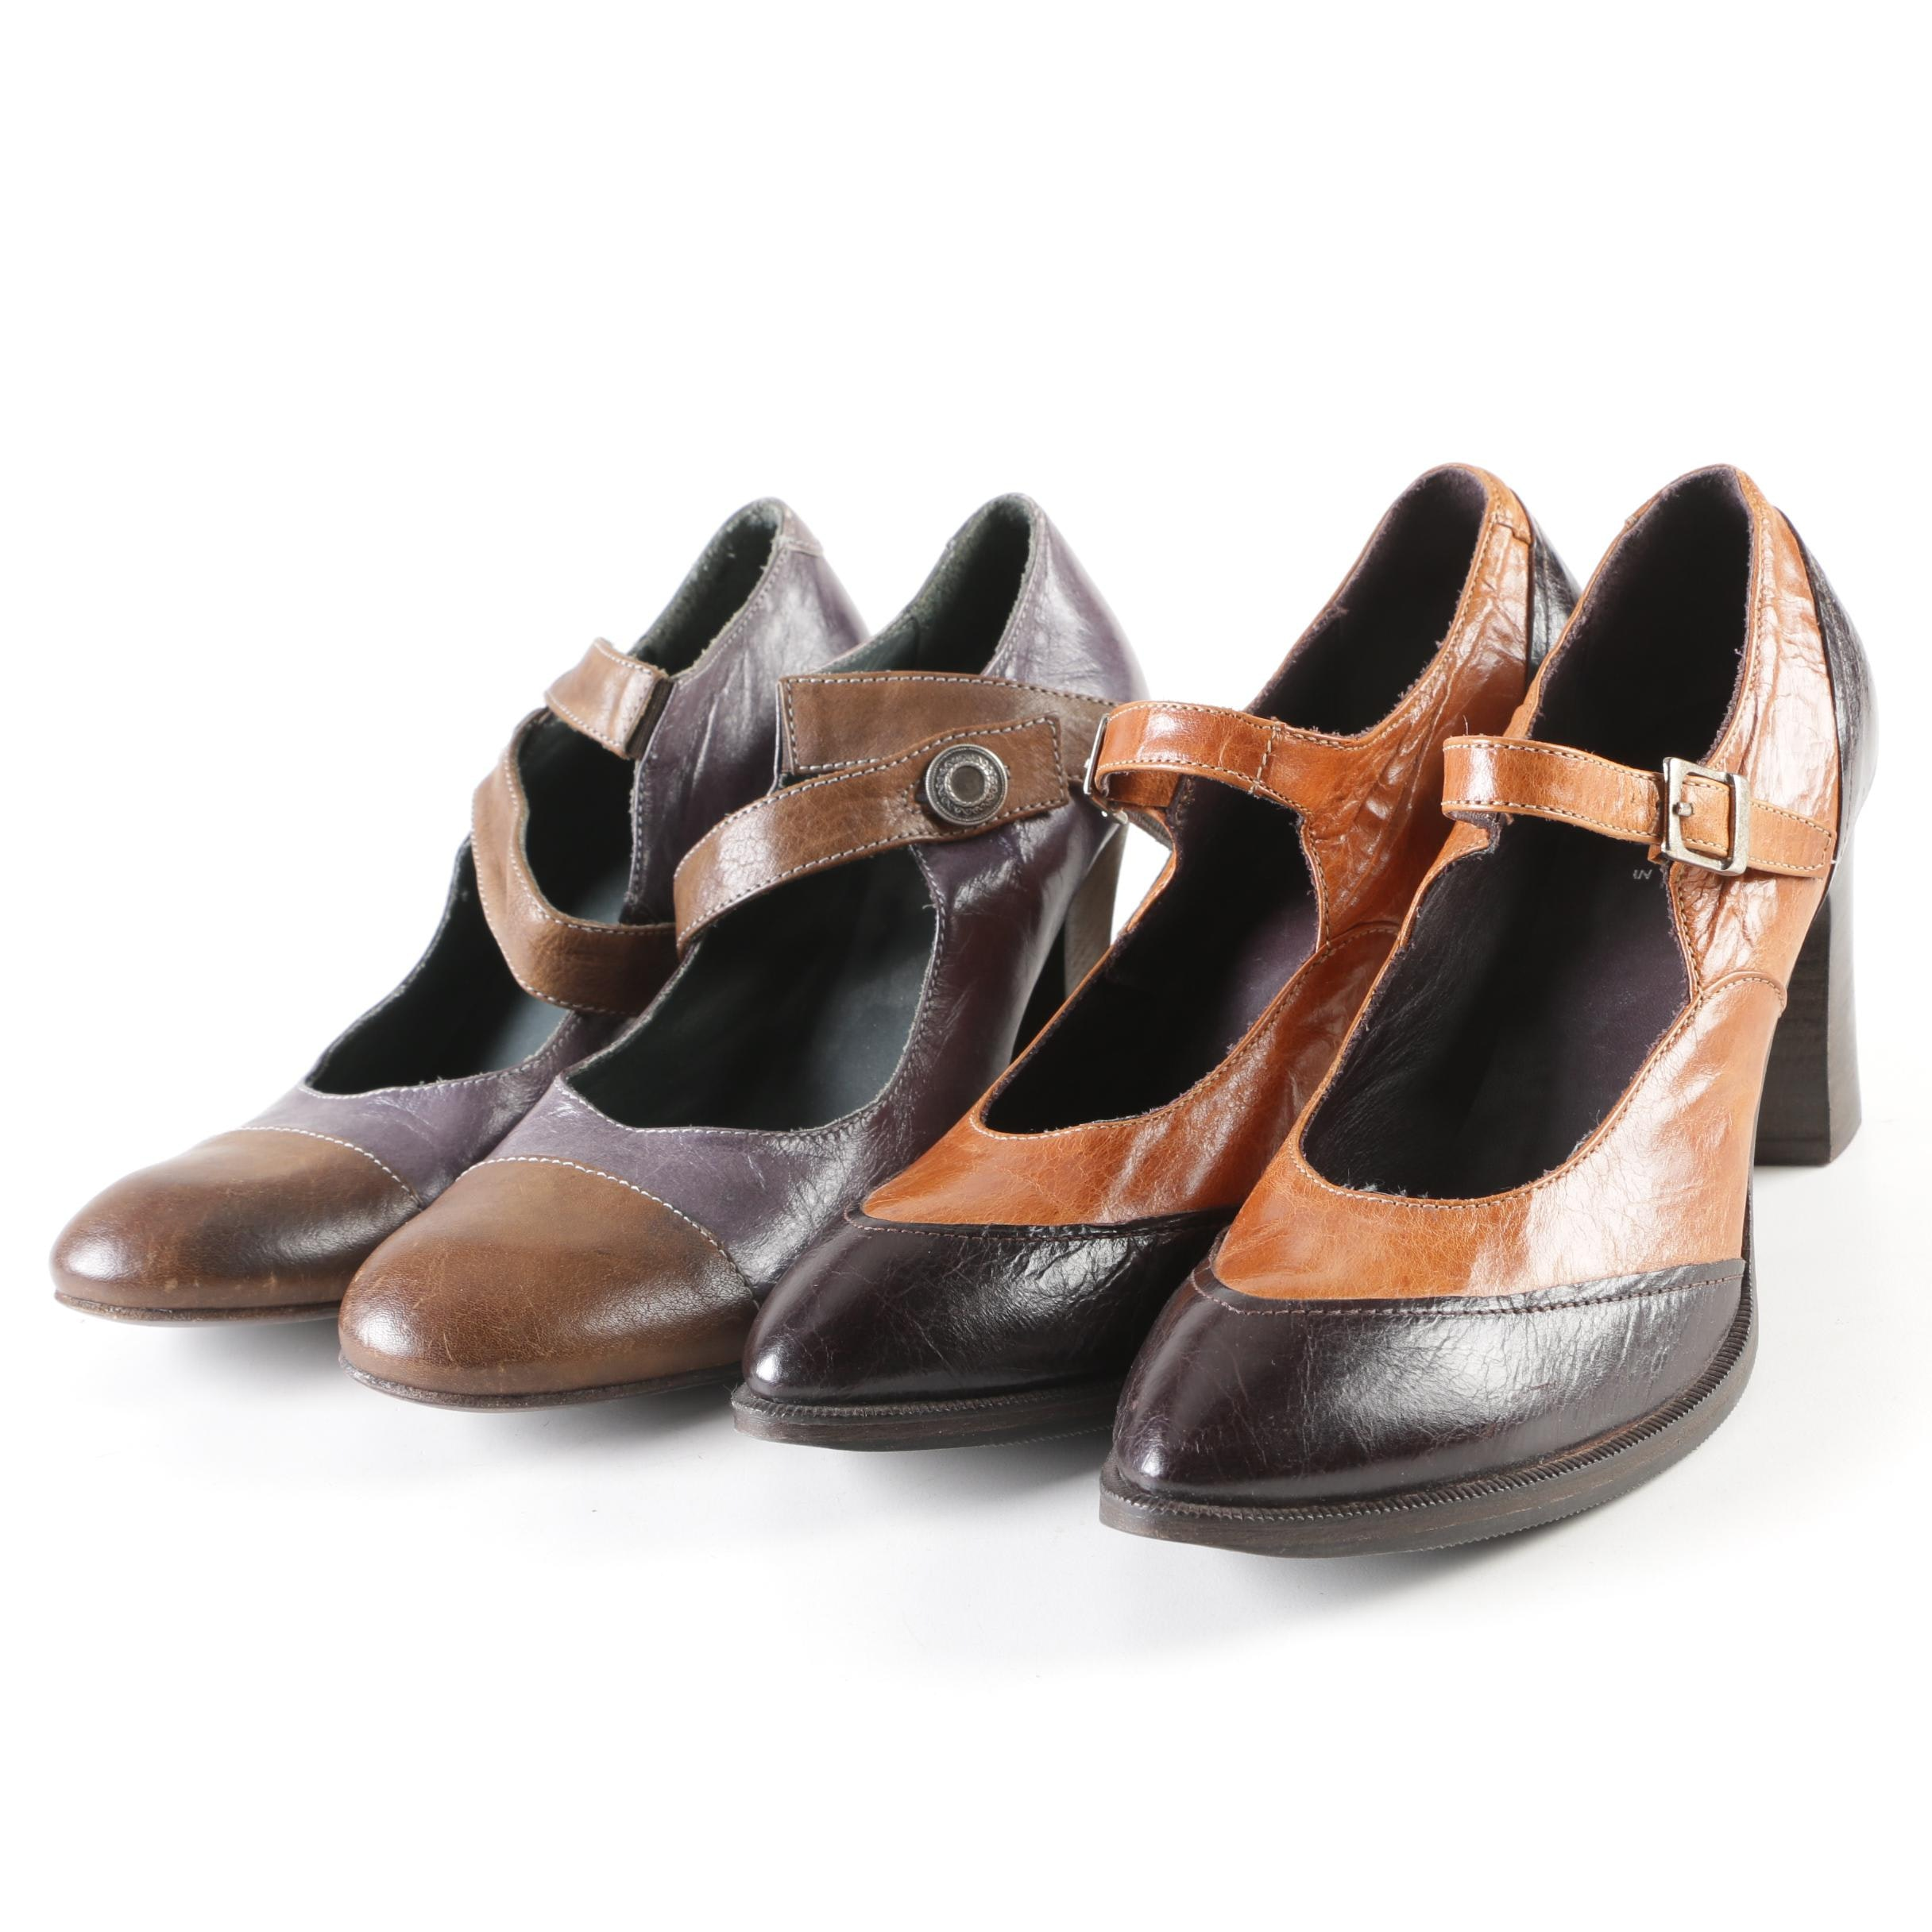 MOMA Two Toned Mary Jane-Style Heels